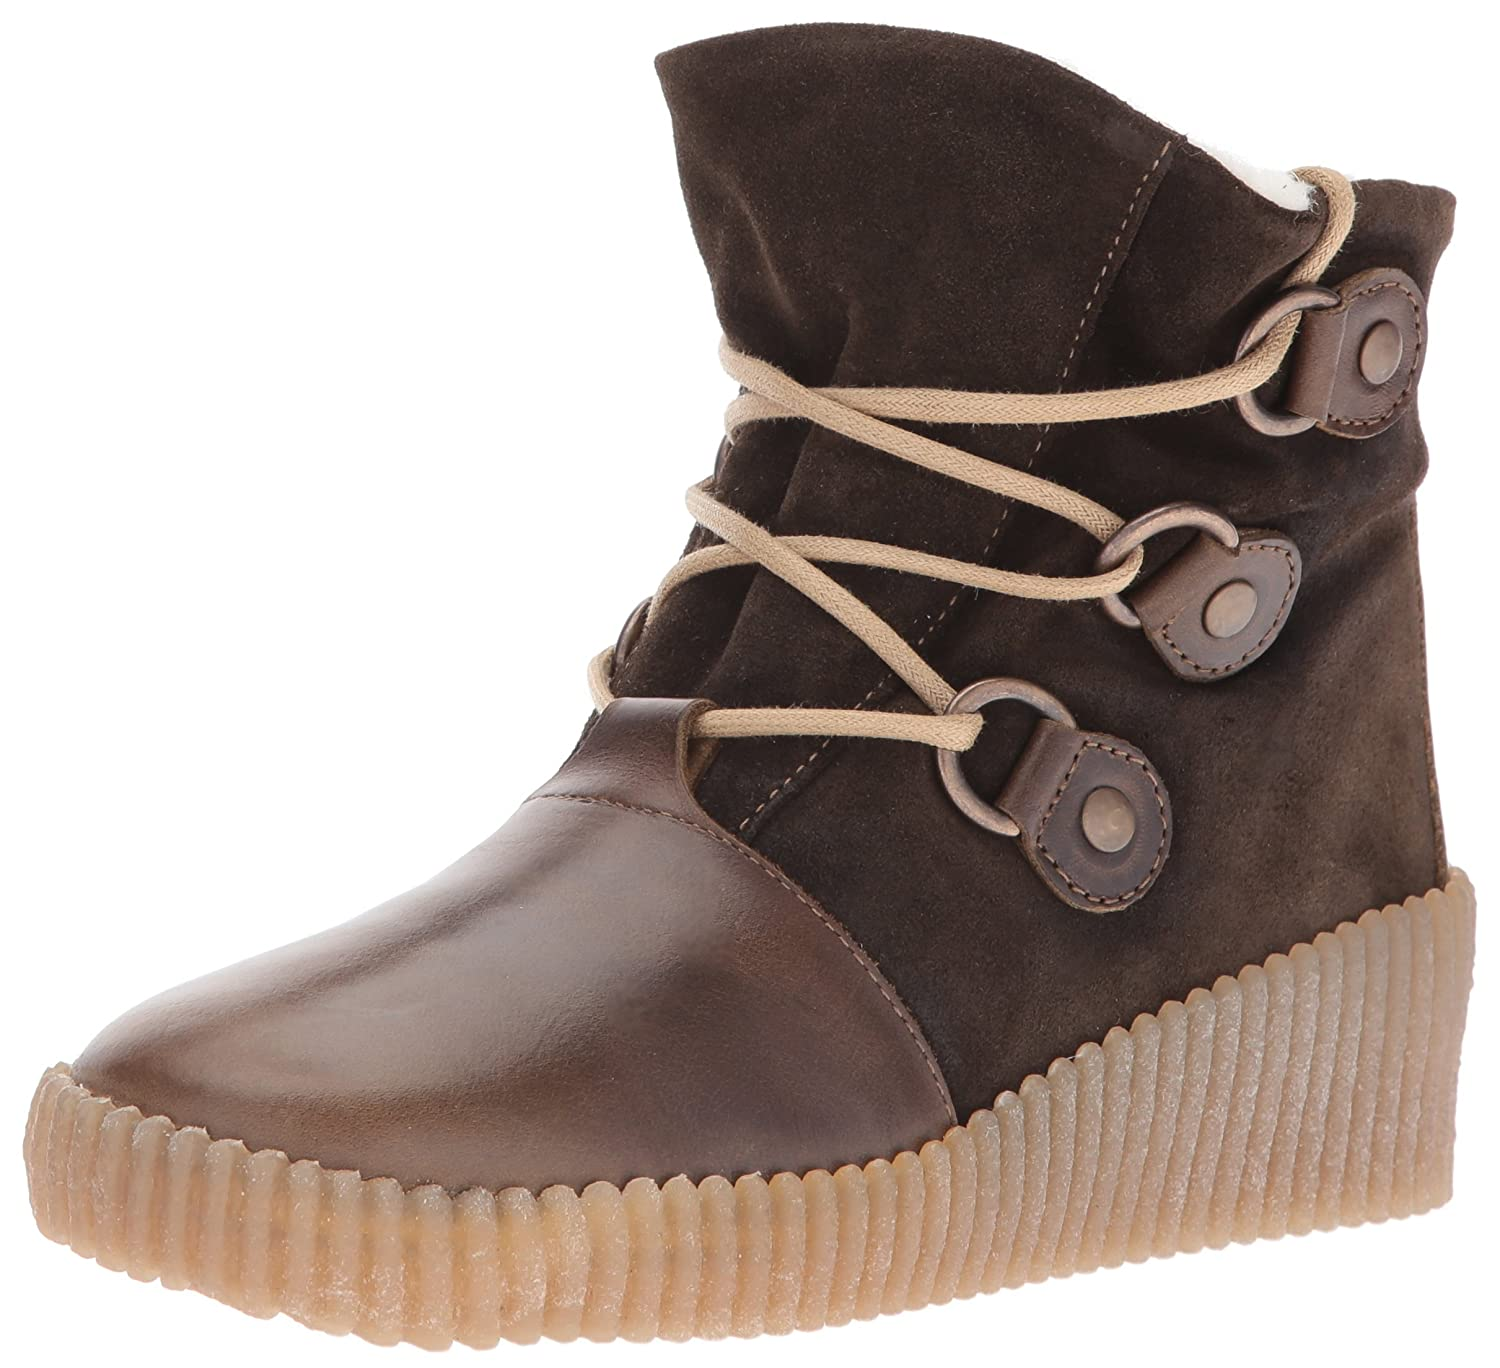 FLY London Women's Abat251fly Snow Boot B01DBXDYY6 40 EU/9-9.5 M US|Olive/Sludge Rug/Oil Suede